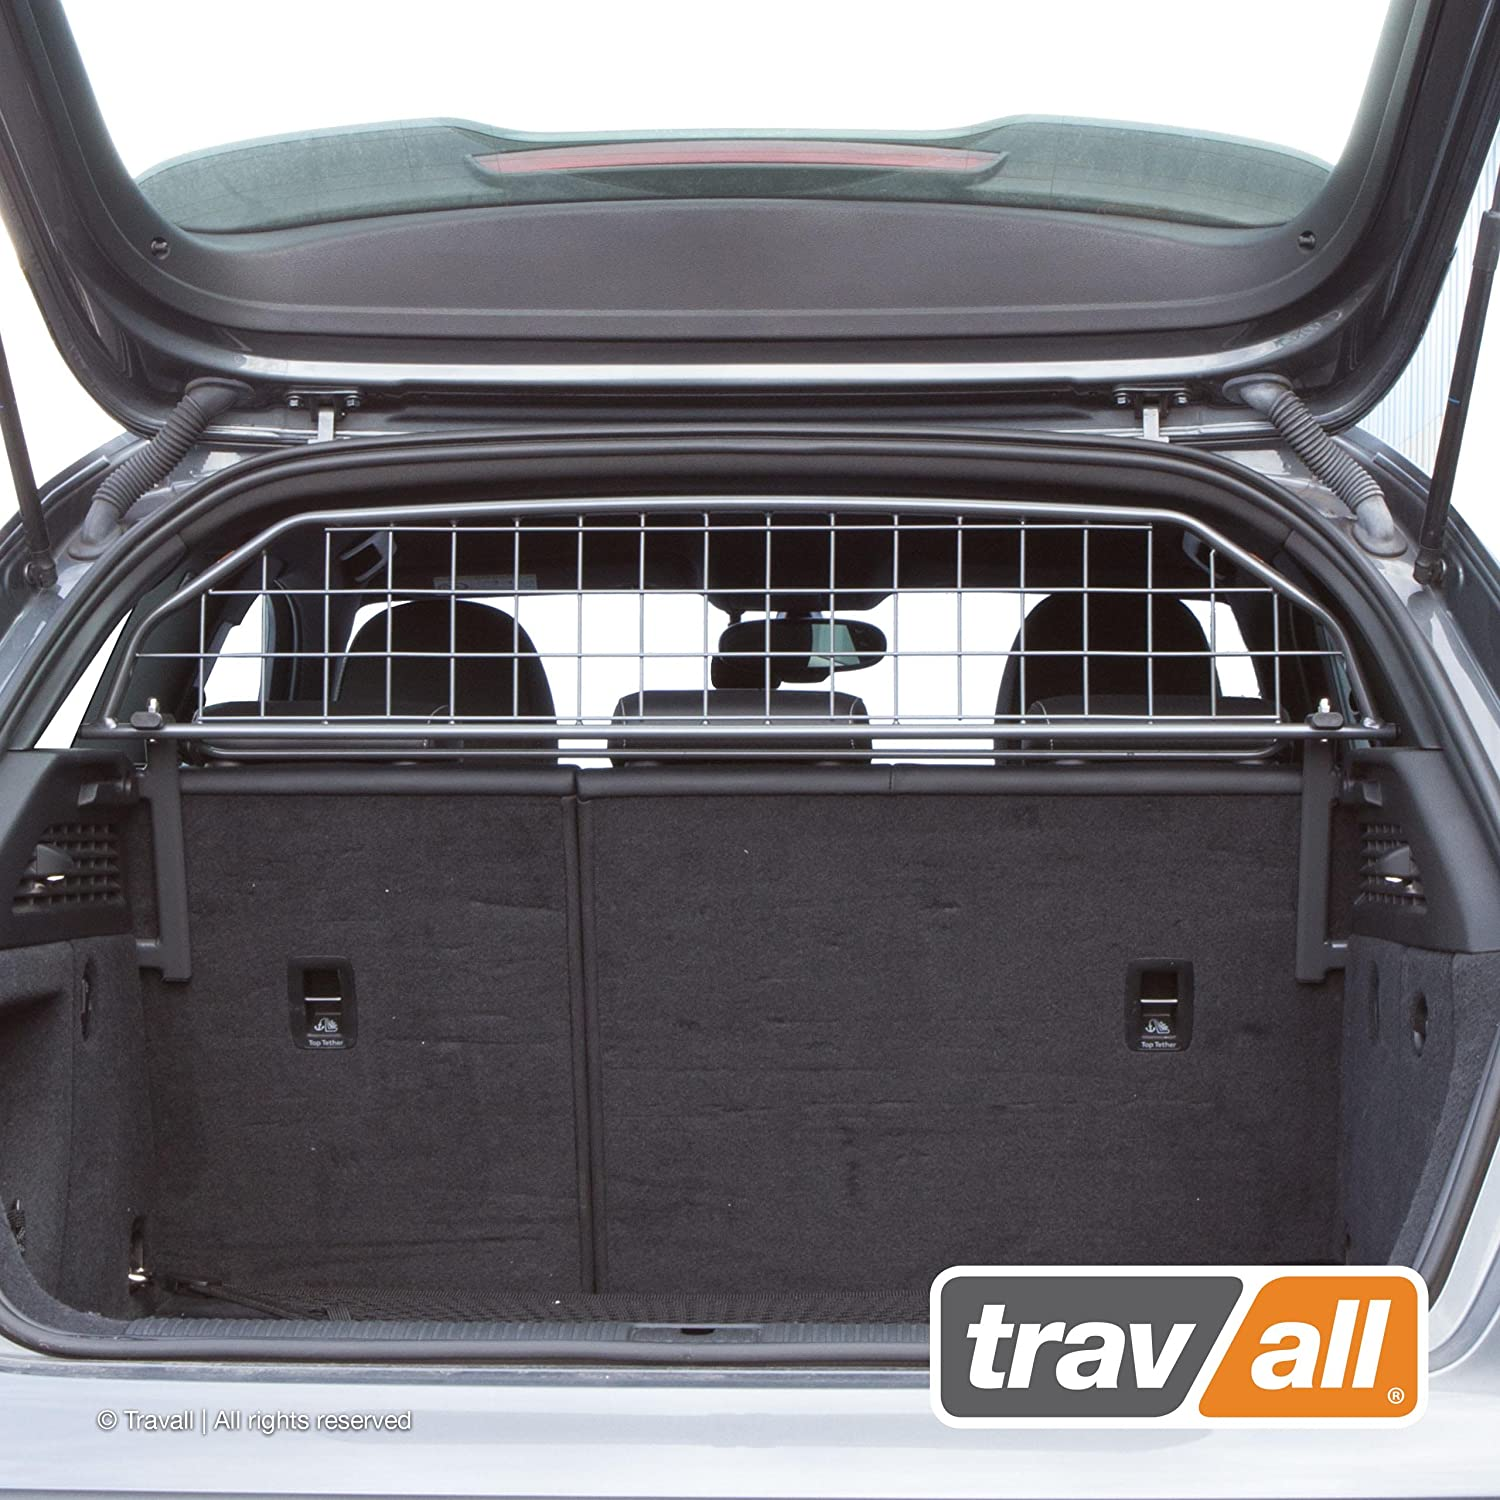 Travall Guard Compatible with Audi A3 Sportback and 3 Door (2012-2020) and Selected S3 and RS3 Models TDG1393 - Rattle-Free Steel Pet Barrier